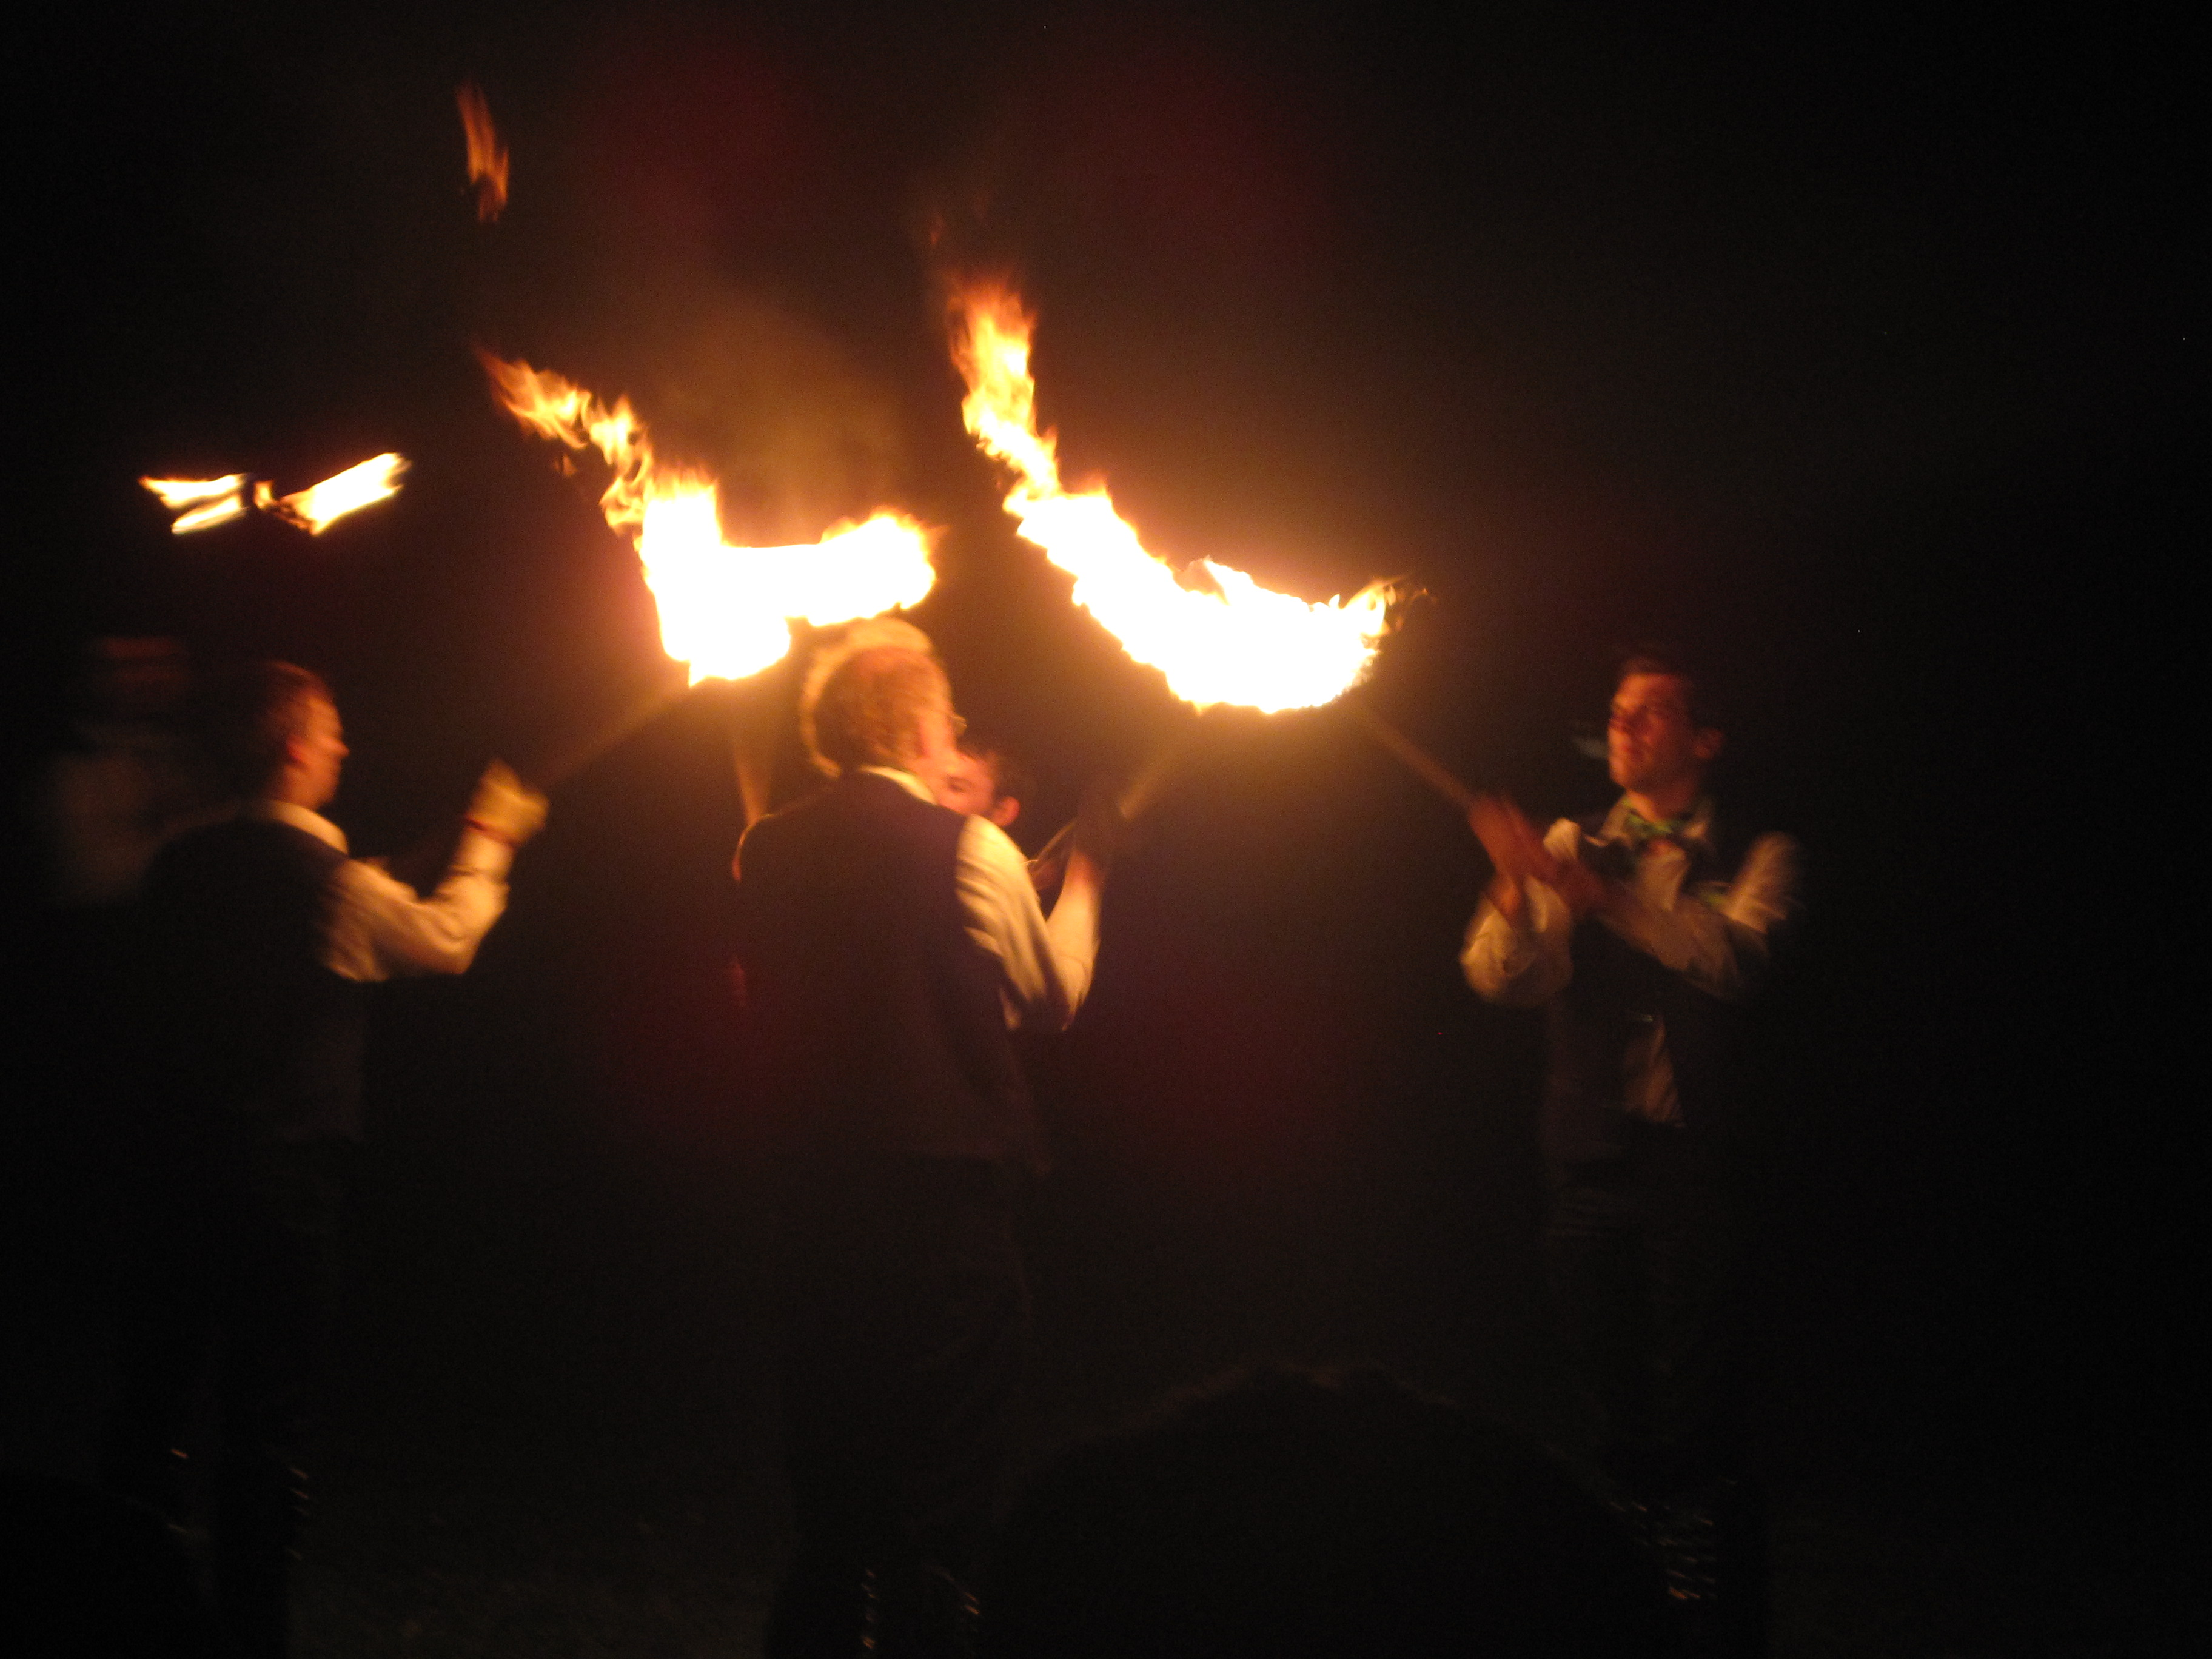 It's manly dancing, because they have fire.